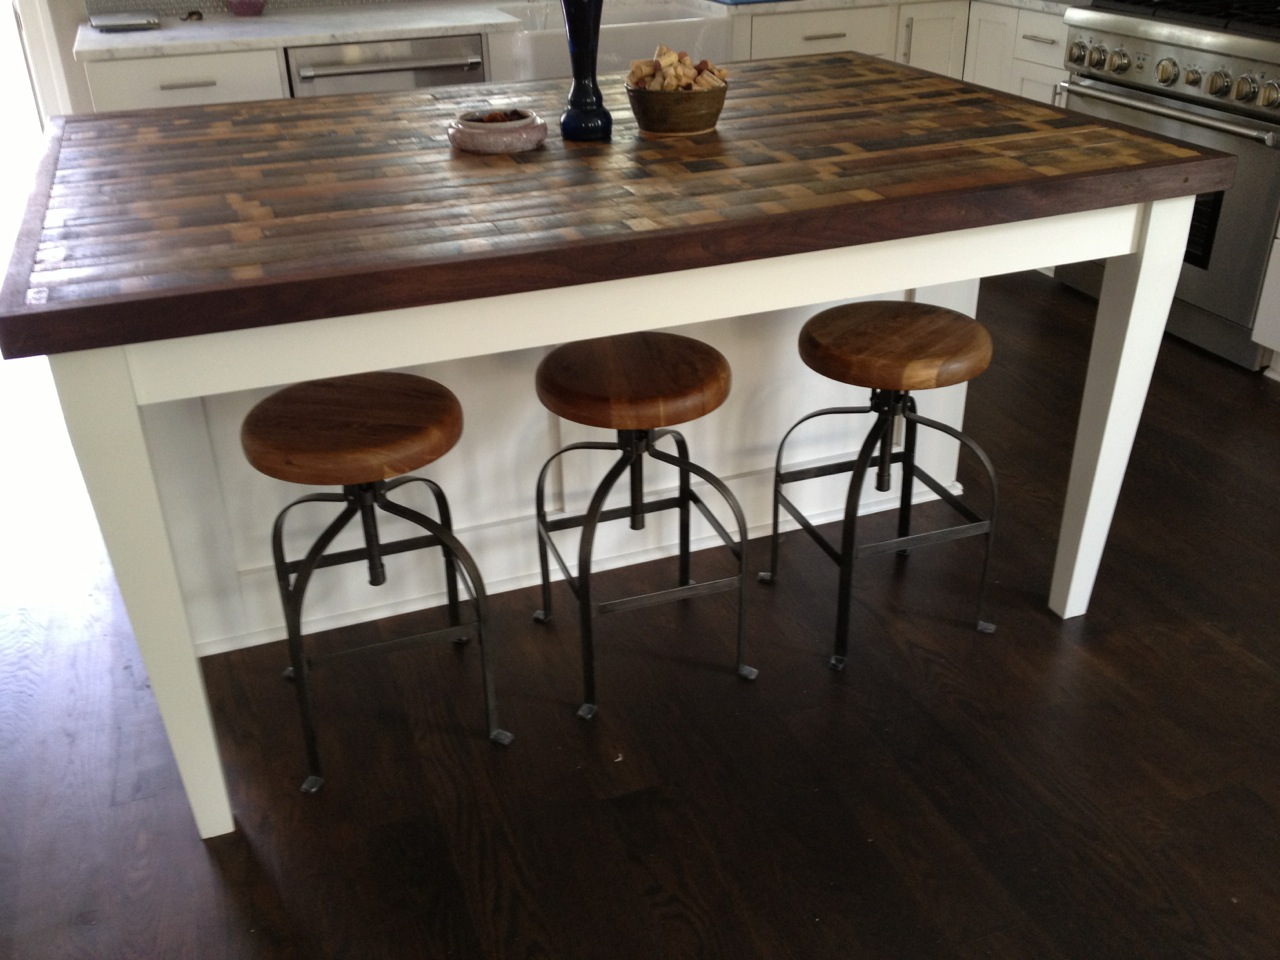 Frantic Bar Table Using Rustic Wood Kitchen Countertop and Seat